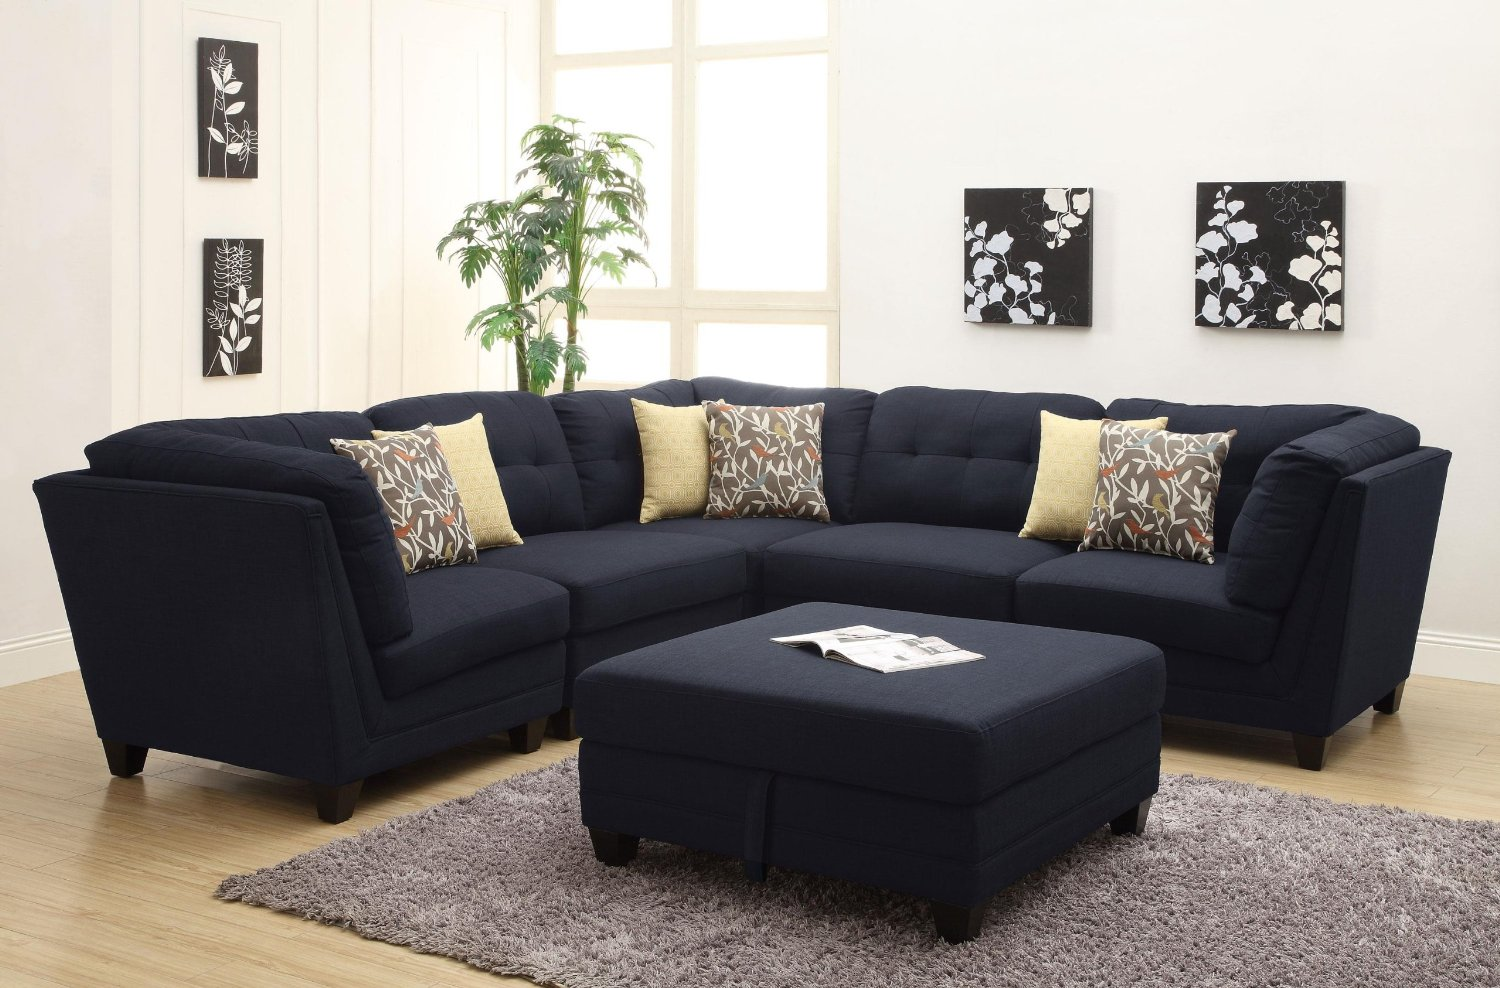 Most comfortable sectional sofa for fulfilling a pleasant atmosphere in the living room homesfeed - Maximizing design of living room by determining its needs ...